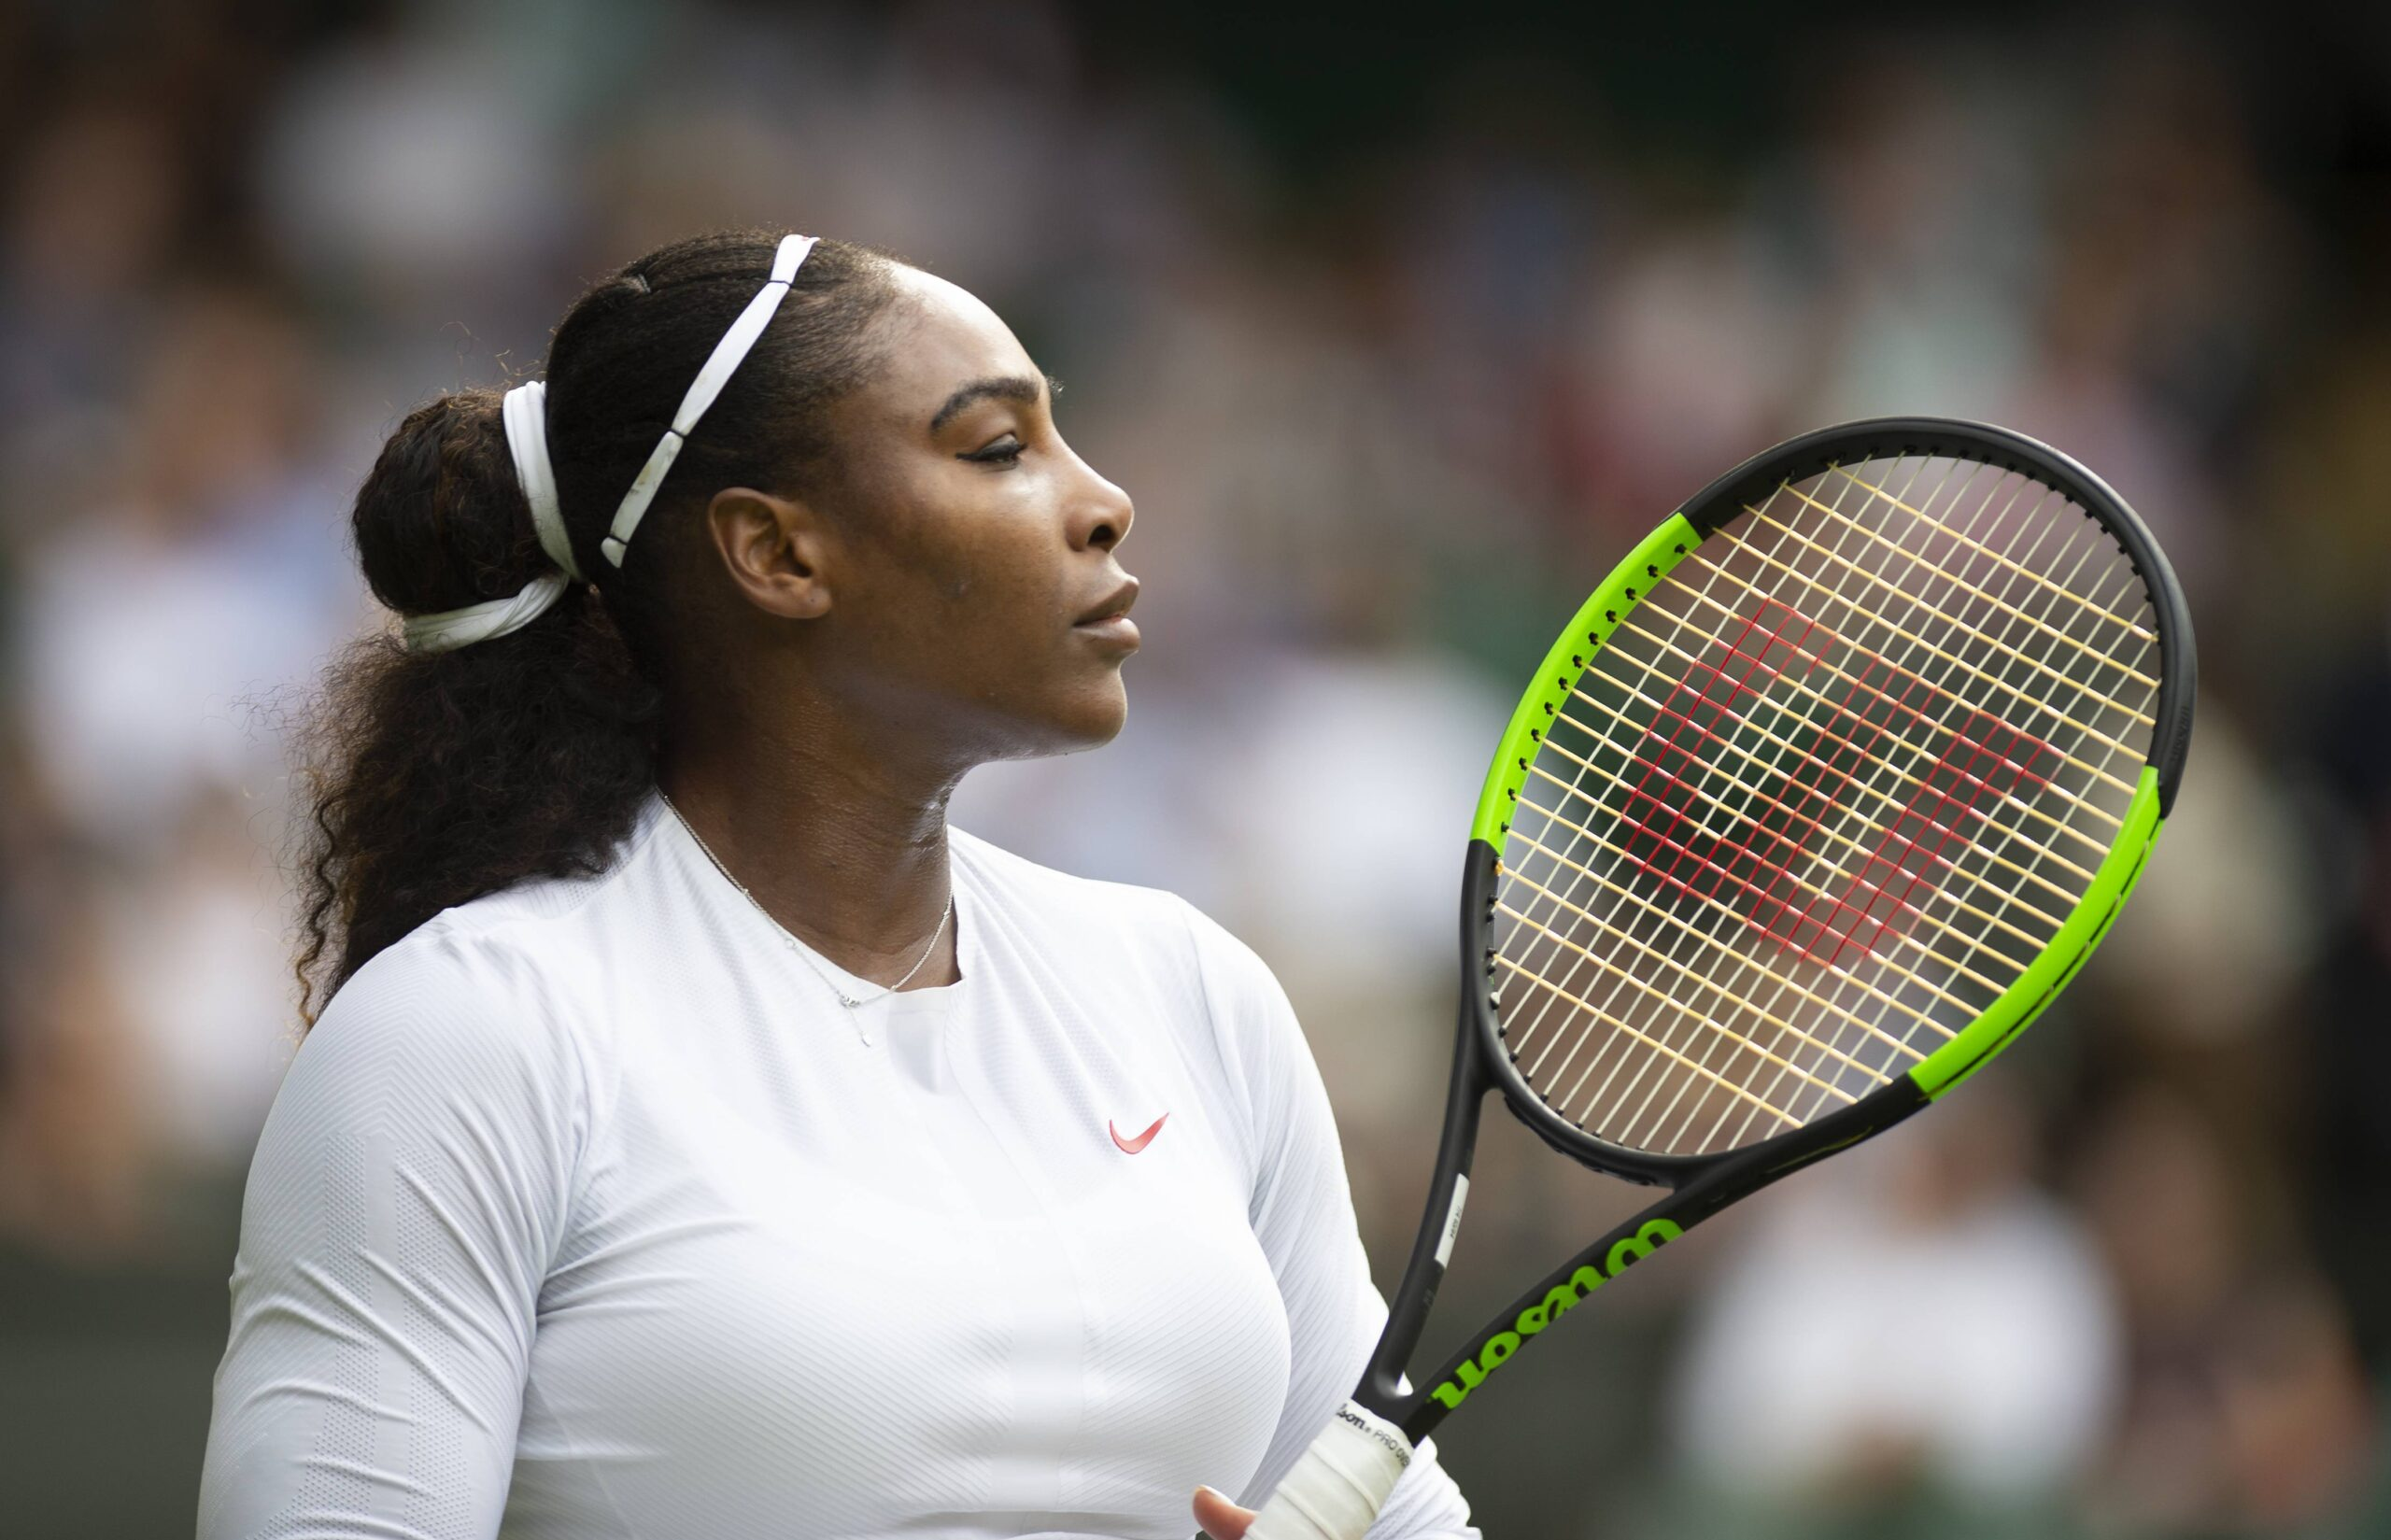 Serena Williams Withdraws From U.S. Open Due To Hamstring Injury